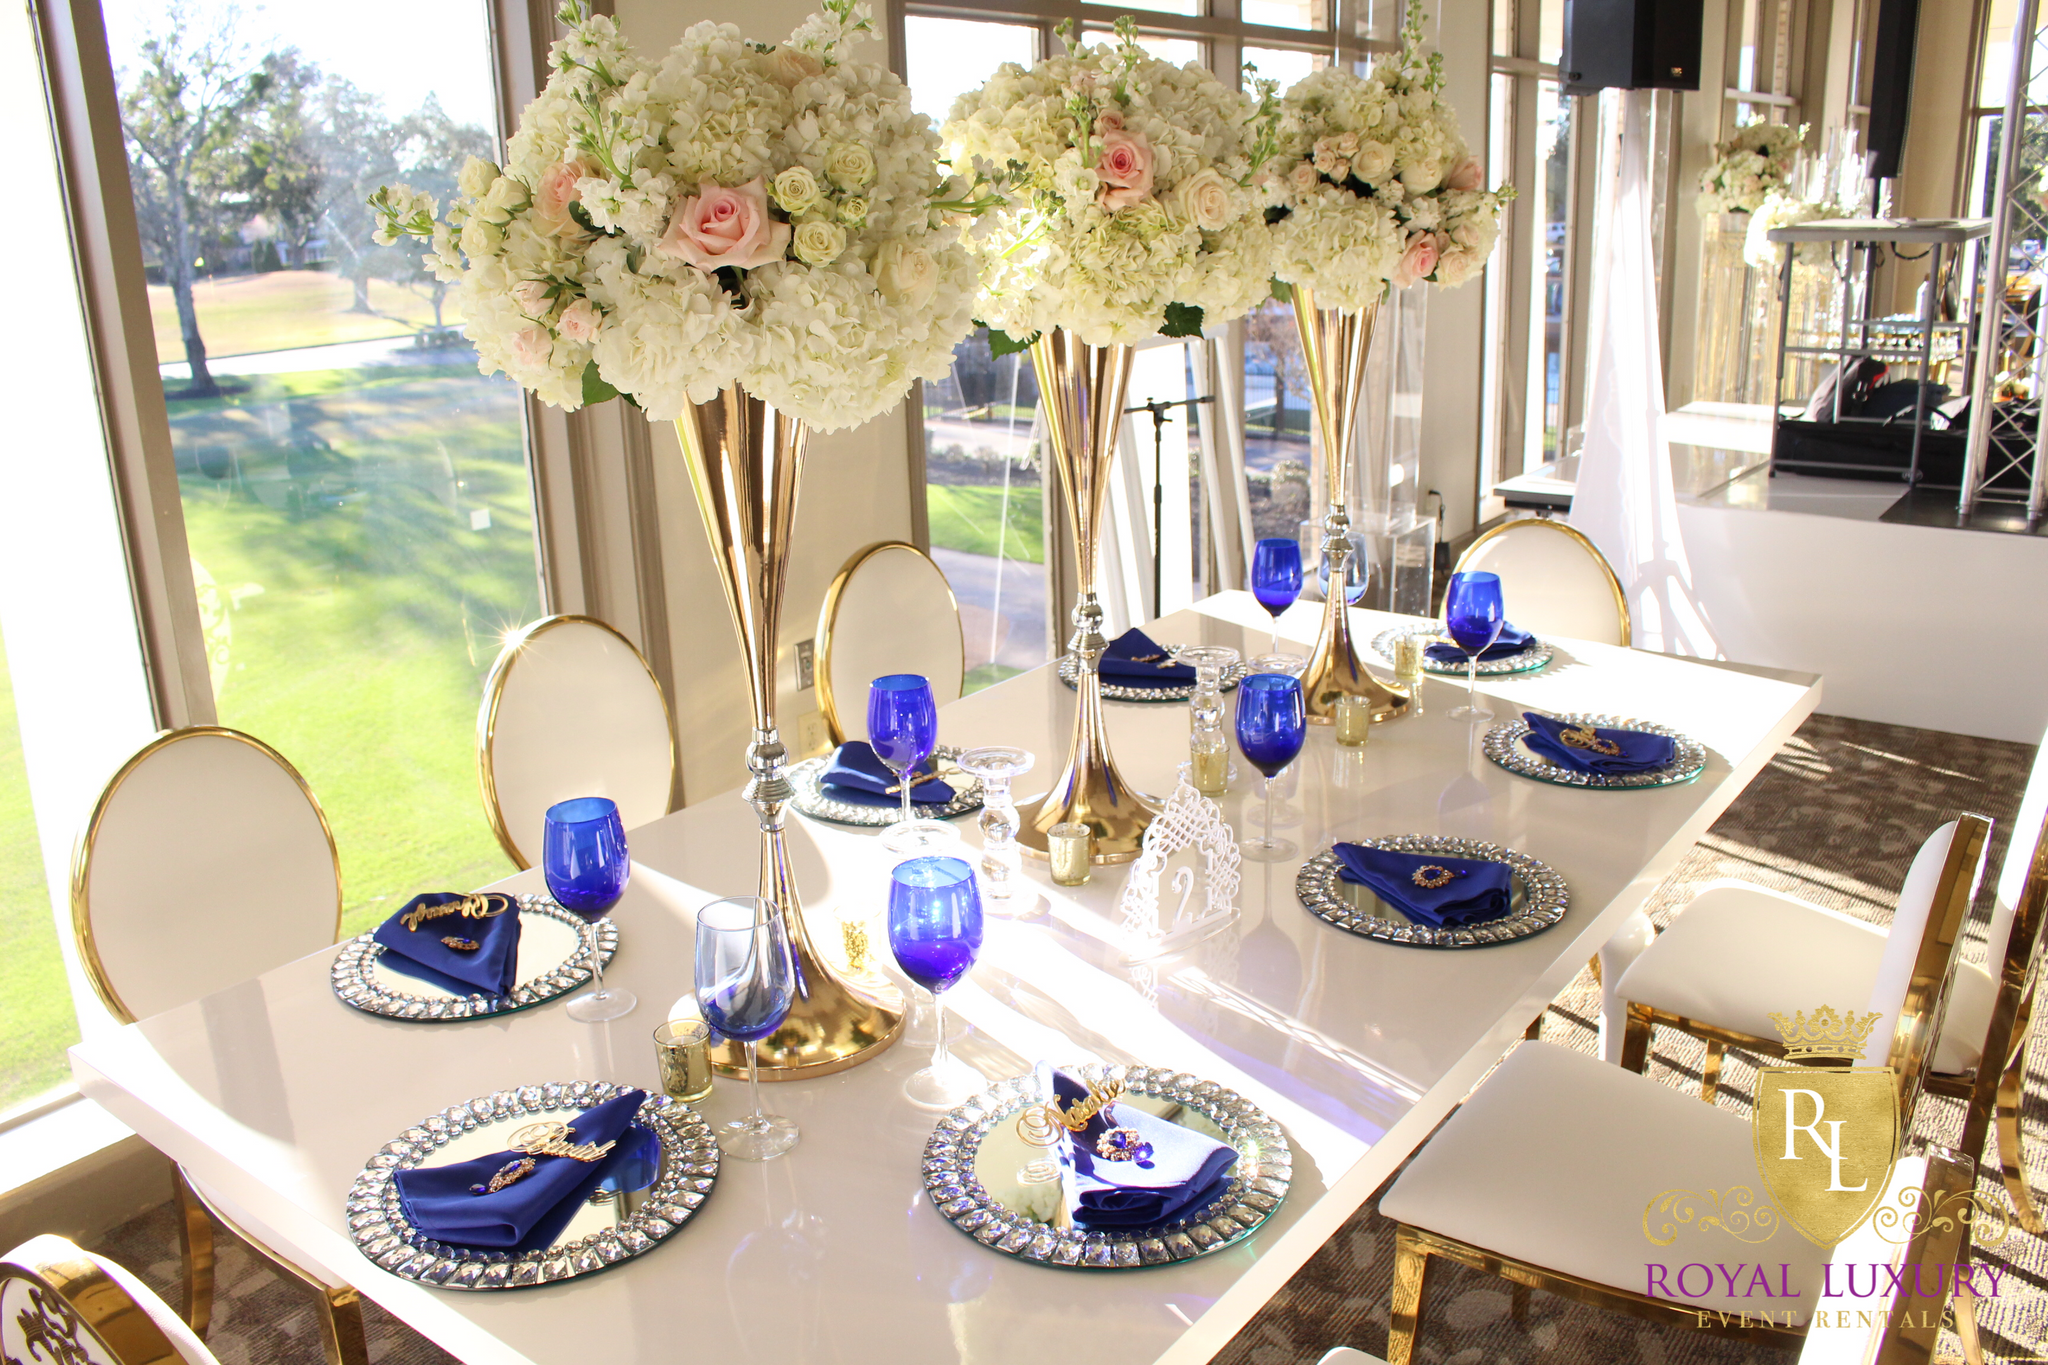 8 Foot All White Sweetheart Or Dining Table Royal Luxury Events Rentals